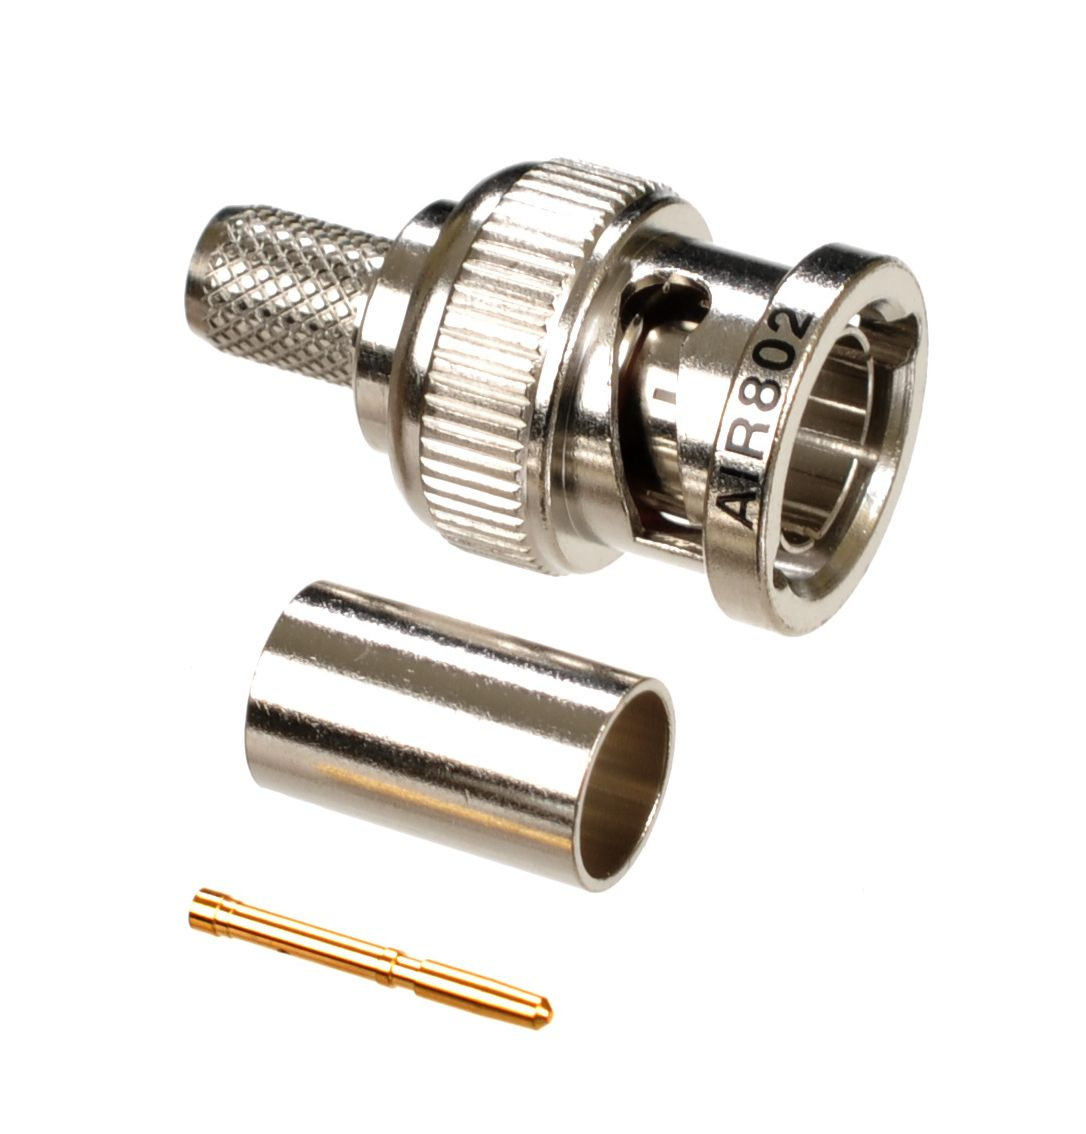 BNC plug or male crimp 3-piece connector for 75 Ohm 20 AWG coaxial cables